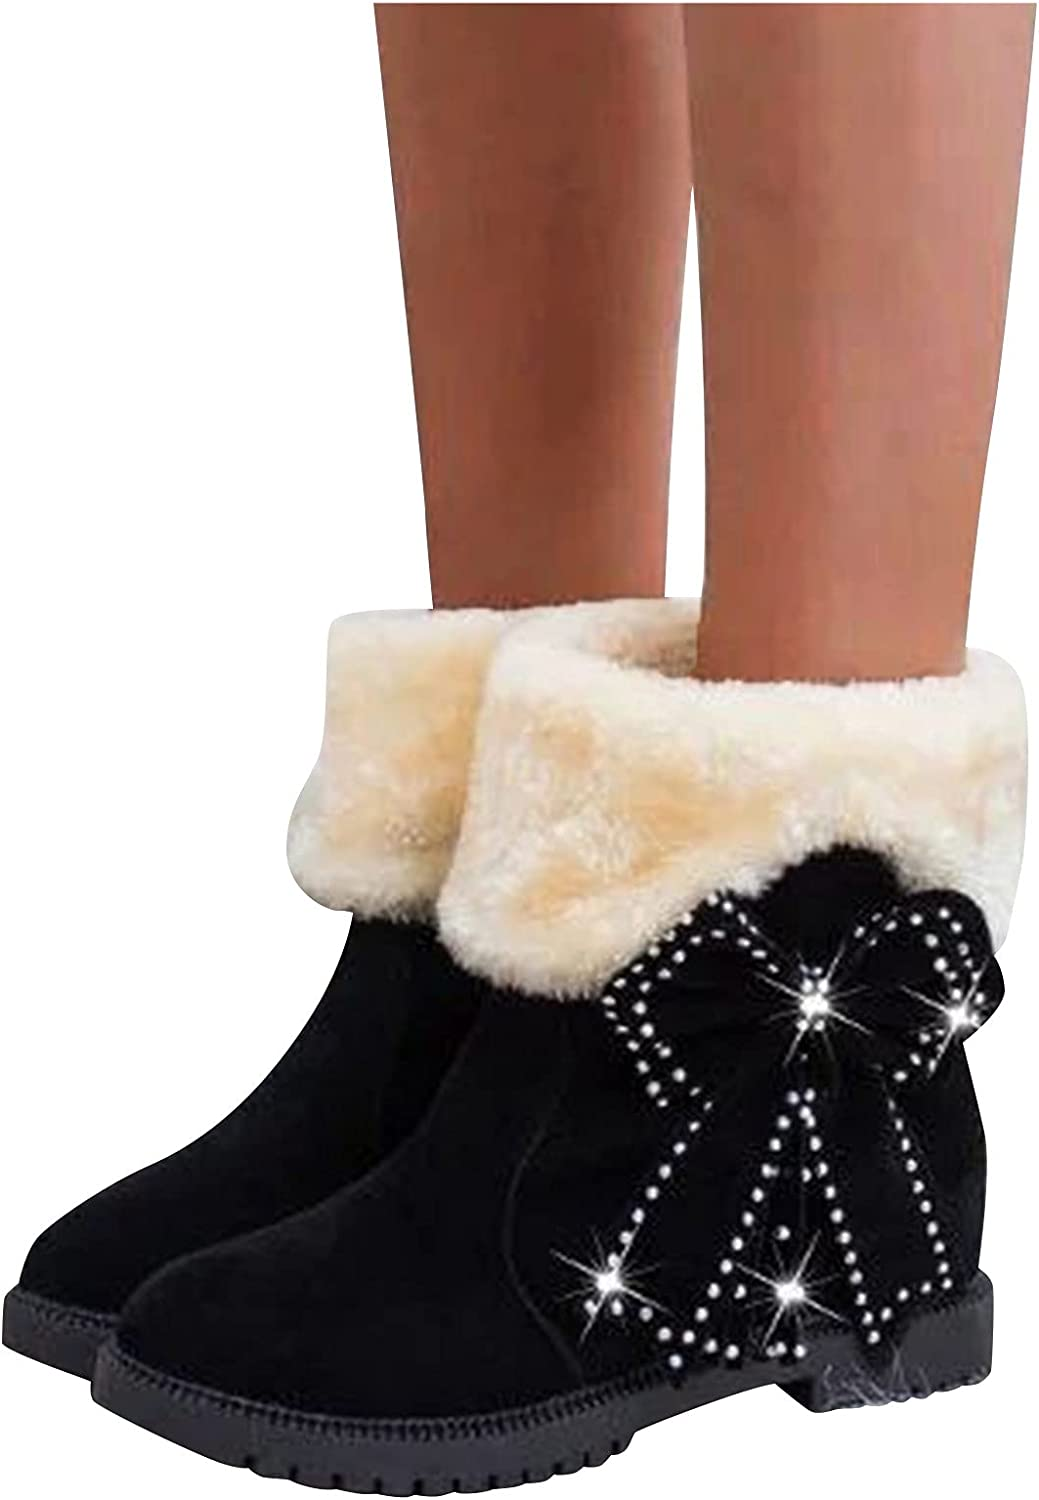 Woolkey Women's Winter Mid Calf Boots Retro Fashion Western Non Slip Bowknot Ankle Boots Round Toe Platform Chunky Heel Waterproof Snow Boots for Ladies Trekking Travel Dating (Black, 10)